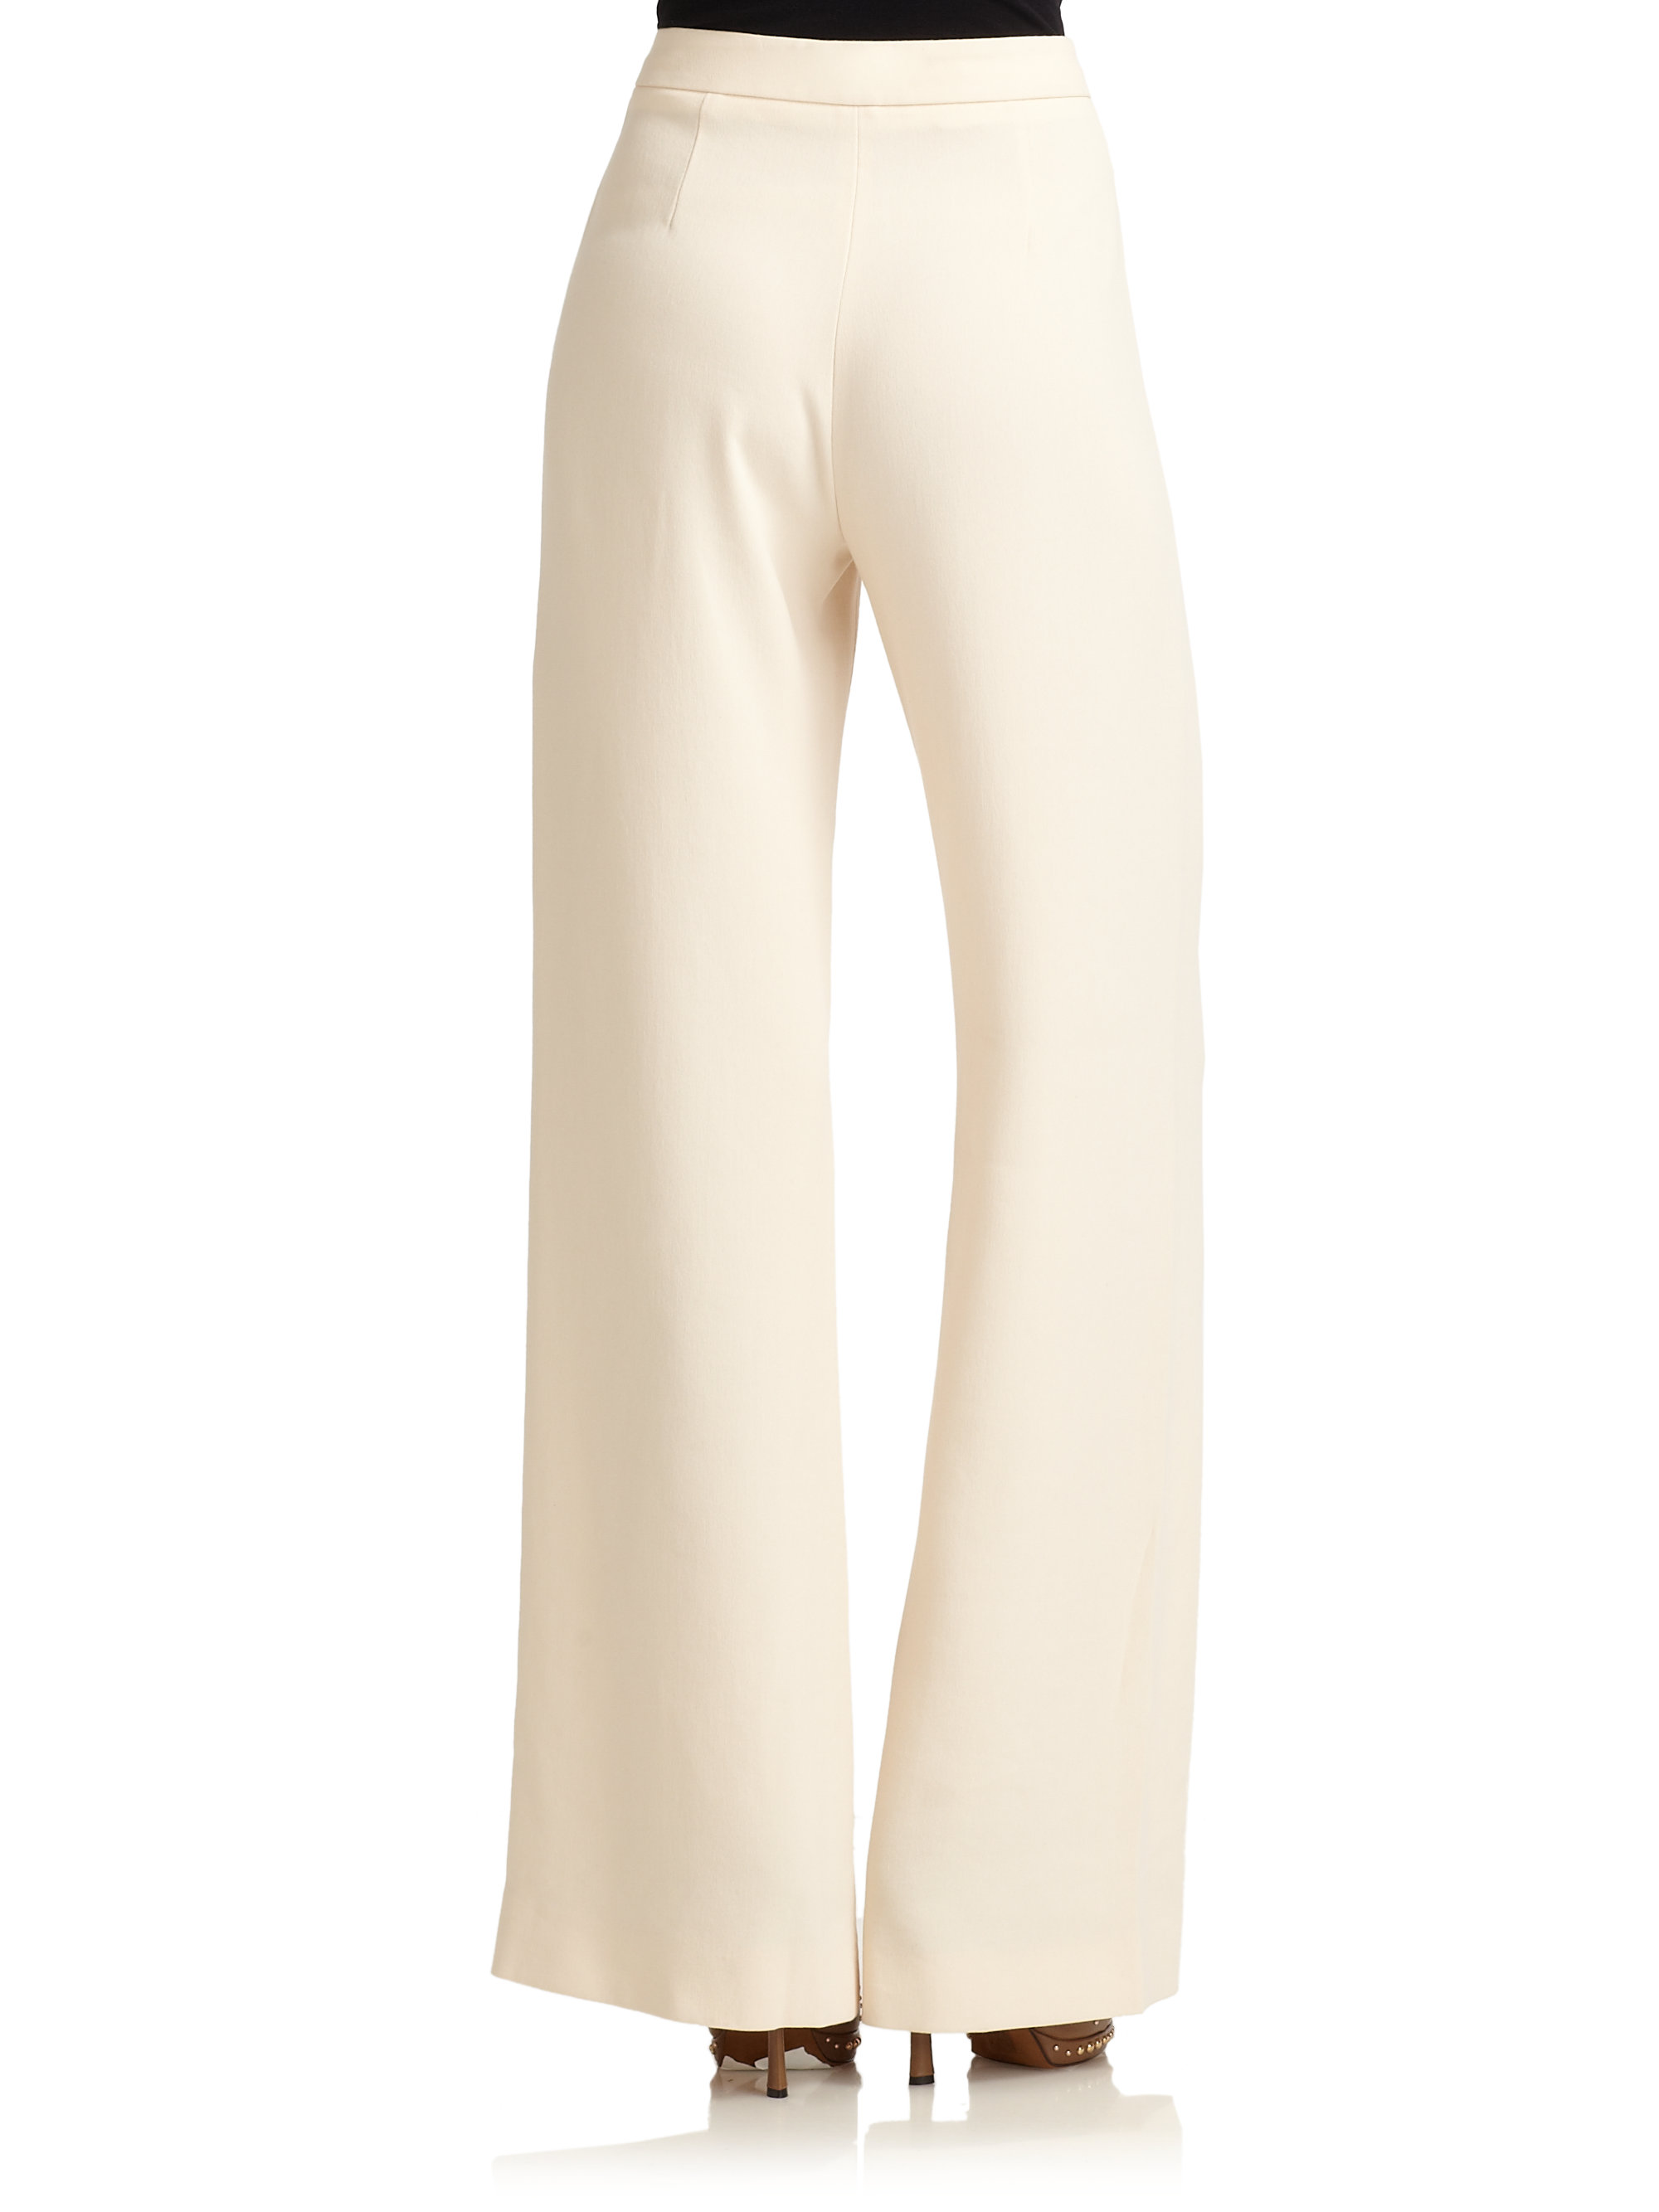 Moschino Wide Leg Pants in White | Lyst